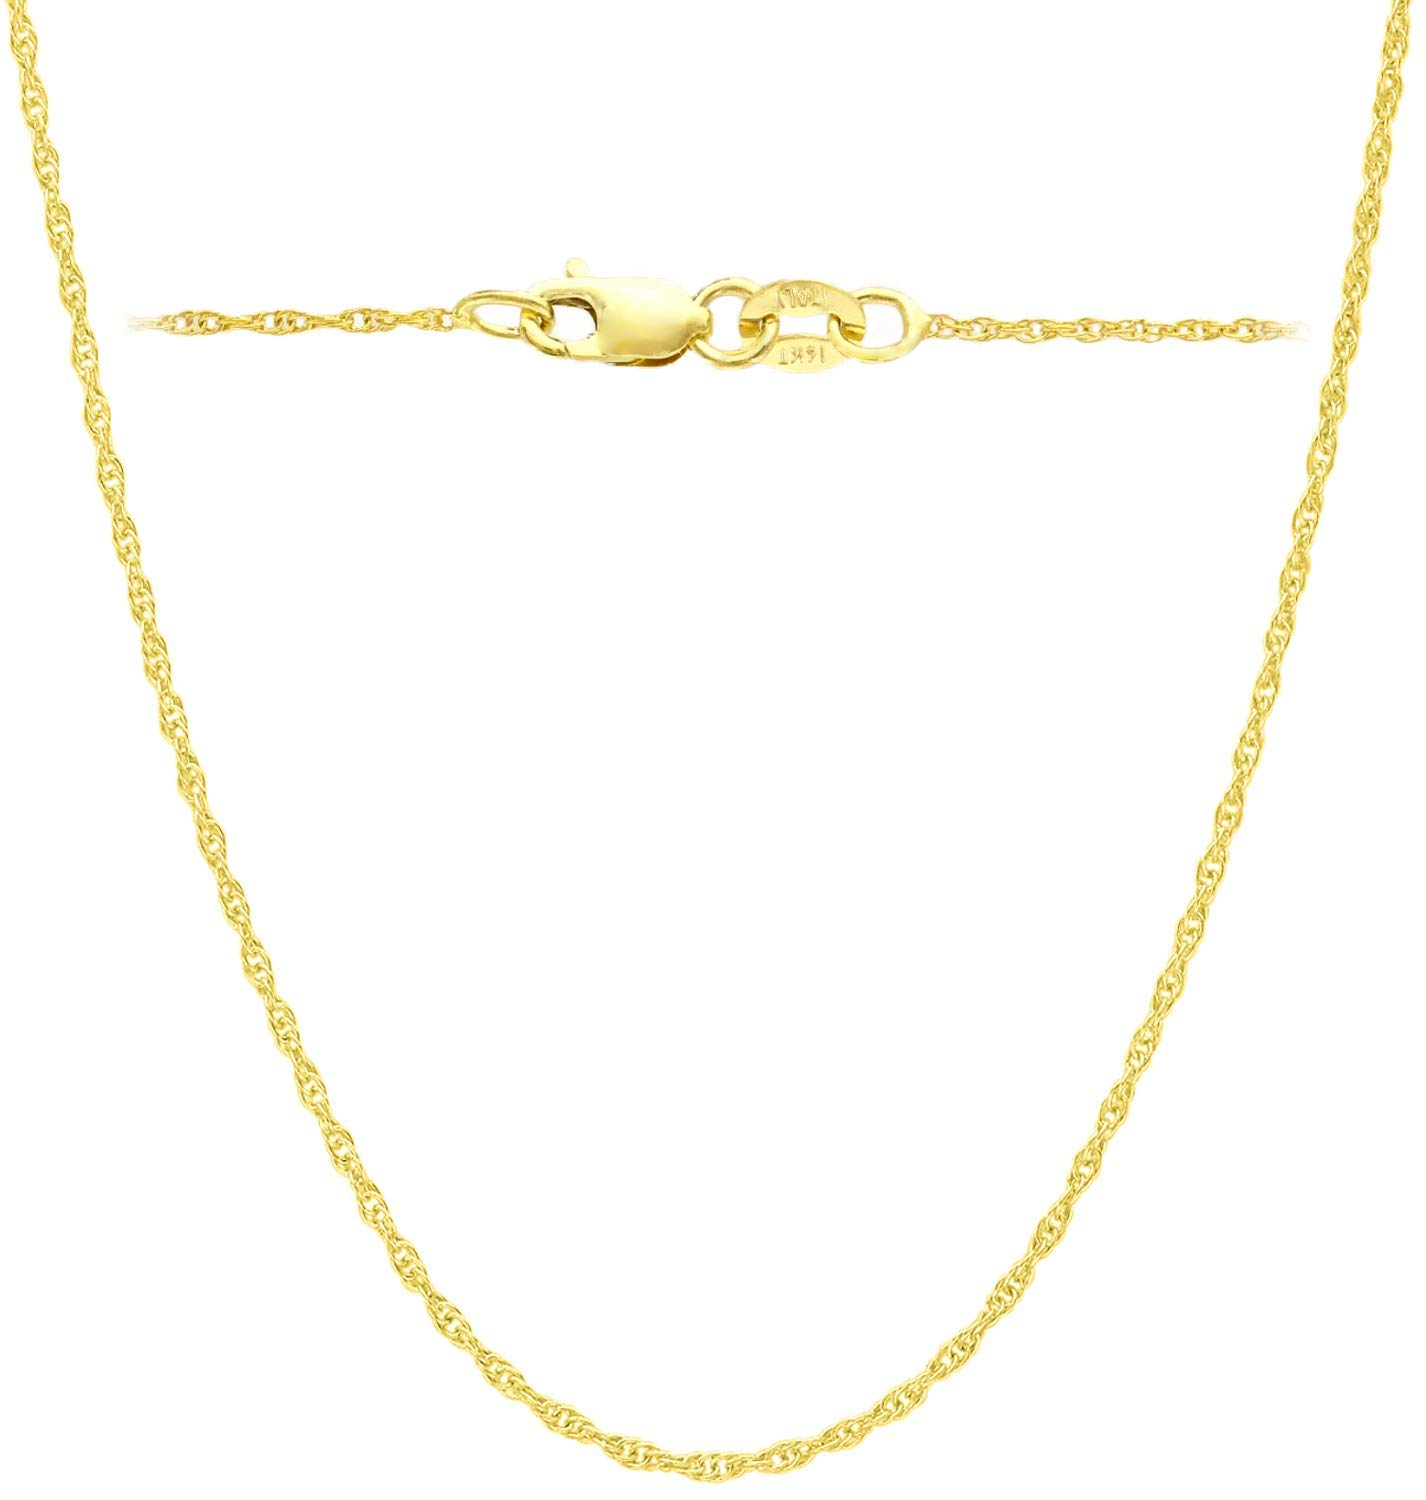 14K Yellow Solid Gold Italian Diamond Cut 1mm Rope Chain Necklace Thin Lightweight Strong (14, 16, 18, 20, 22, 24 or 30 inch) With 1'' extension(18 Inches Yellow-Gold ITALY)